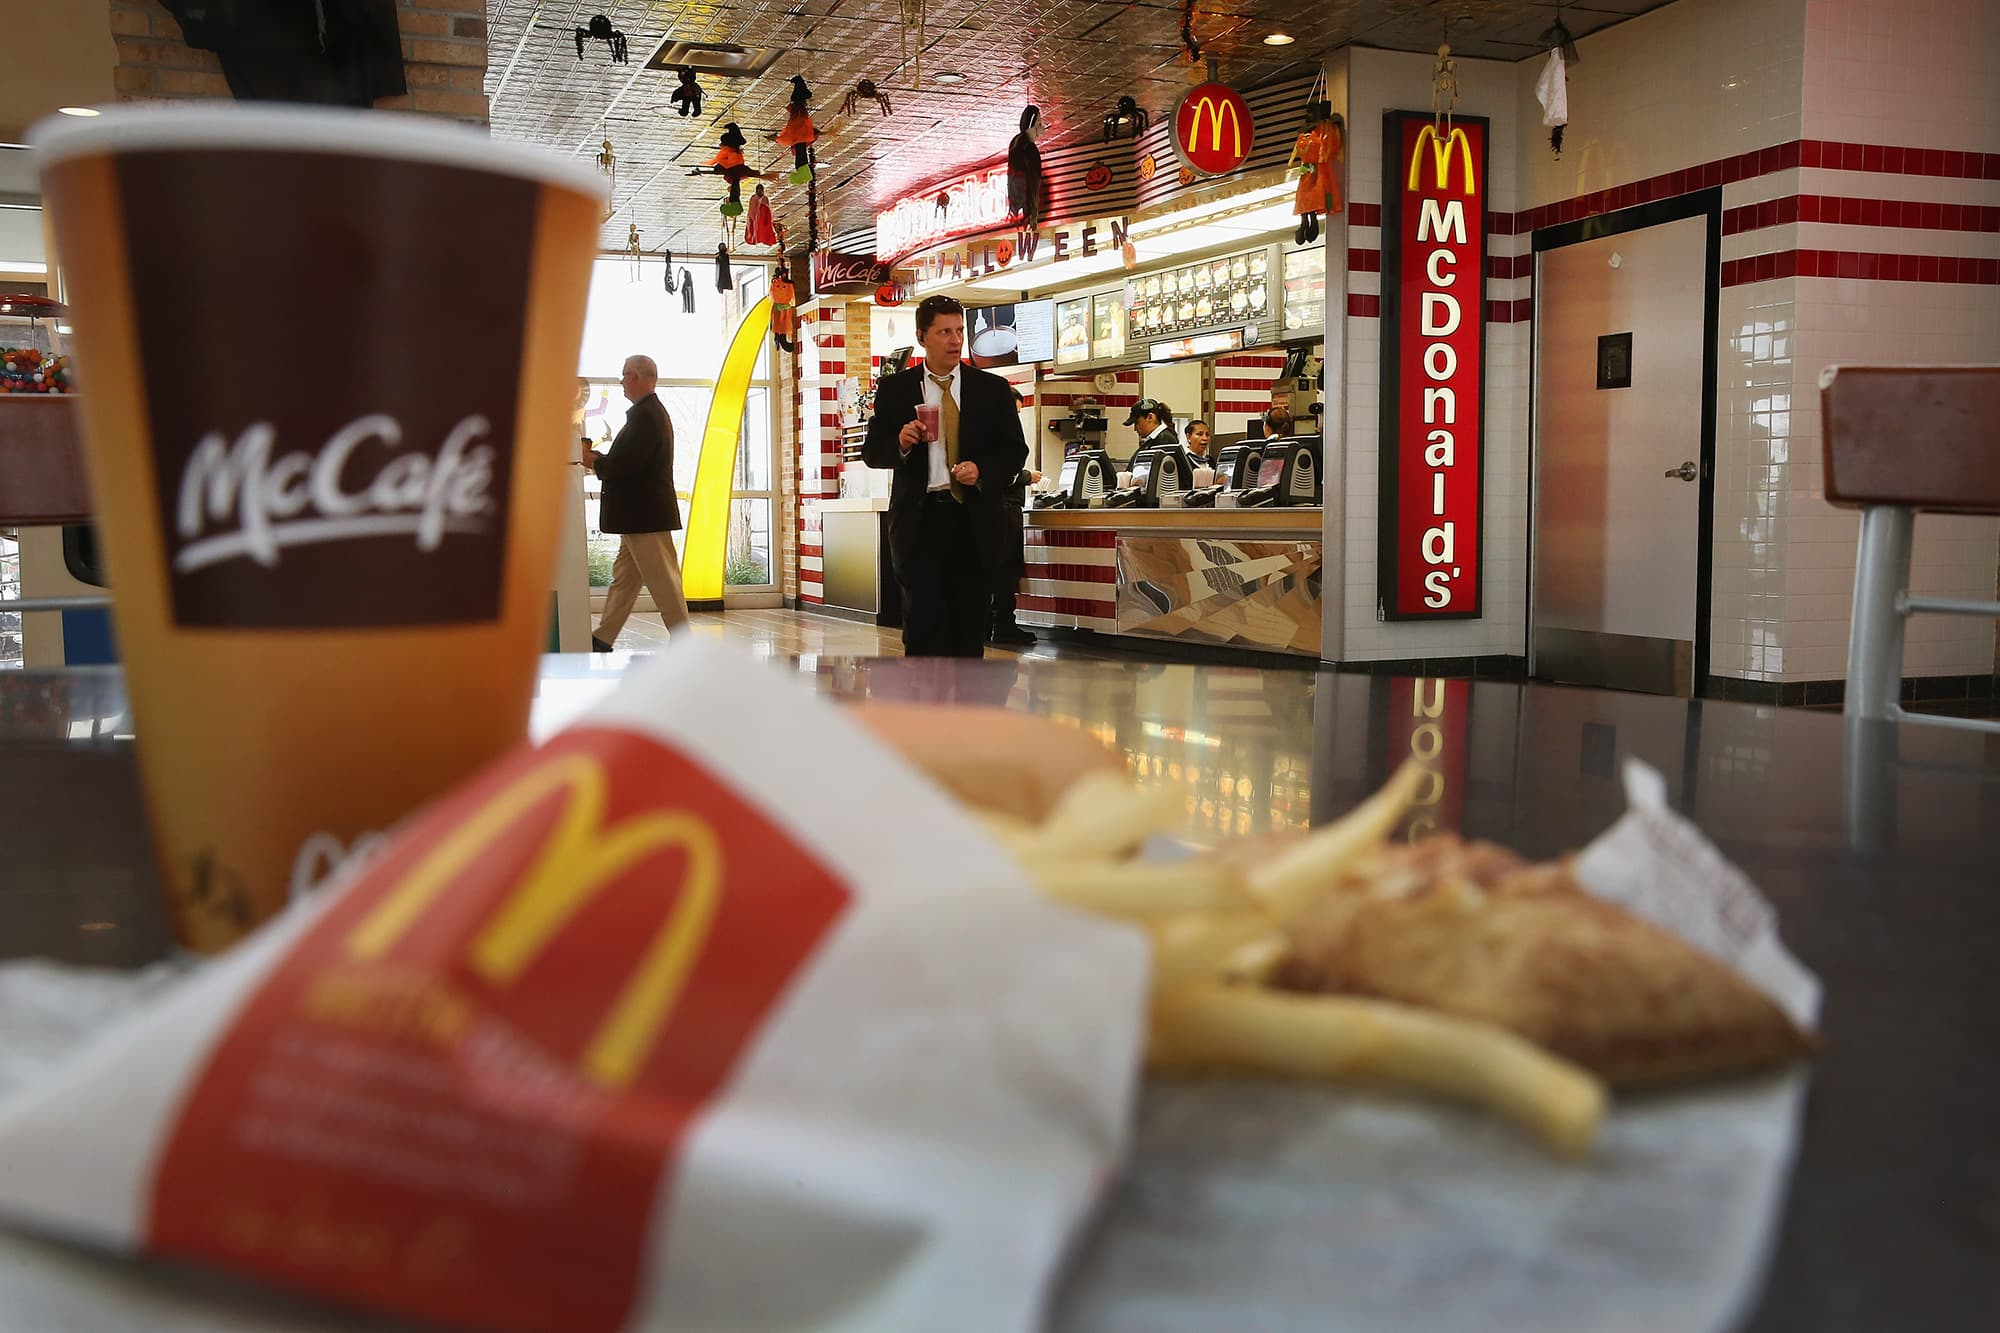 fast food restaurants popularity Why is fast food so popular several factors can result in this situation, including relative low price, less waiting time, delicious taste for most people and existence in everywhere.